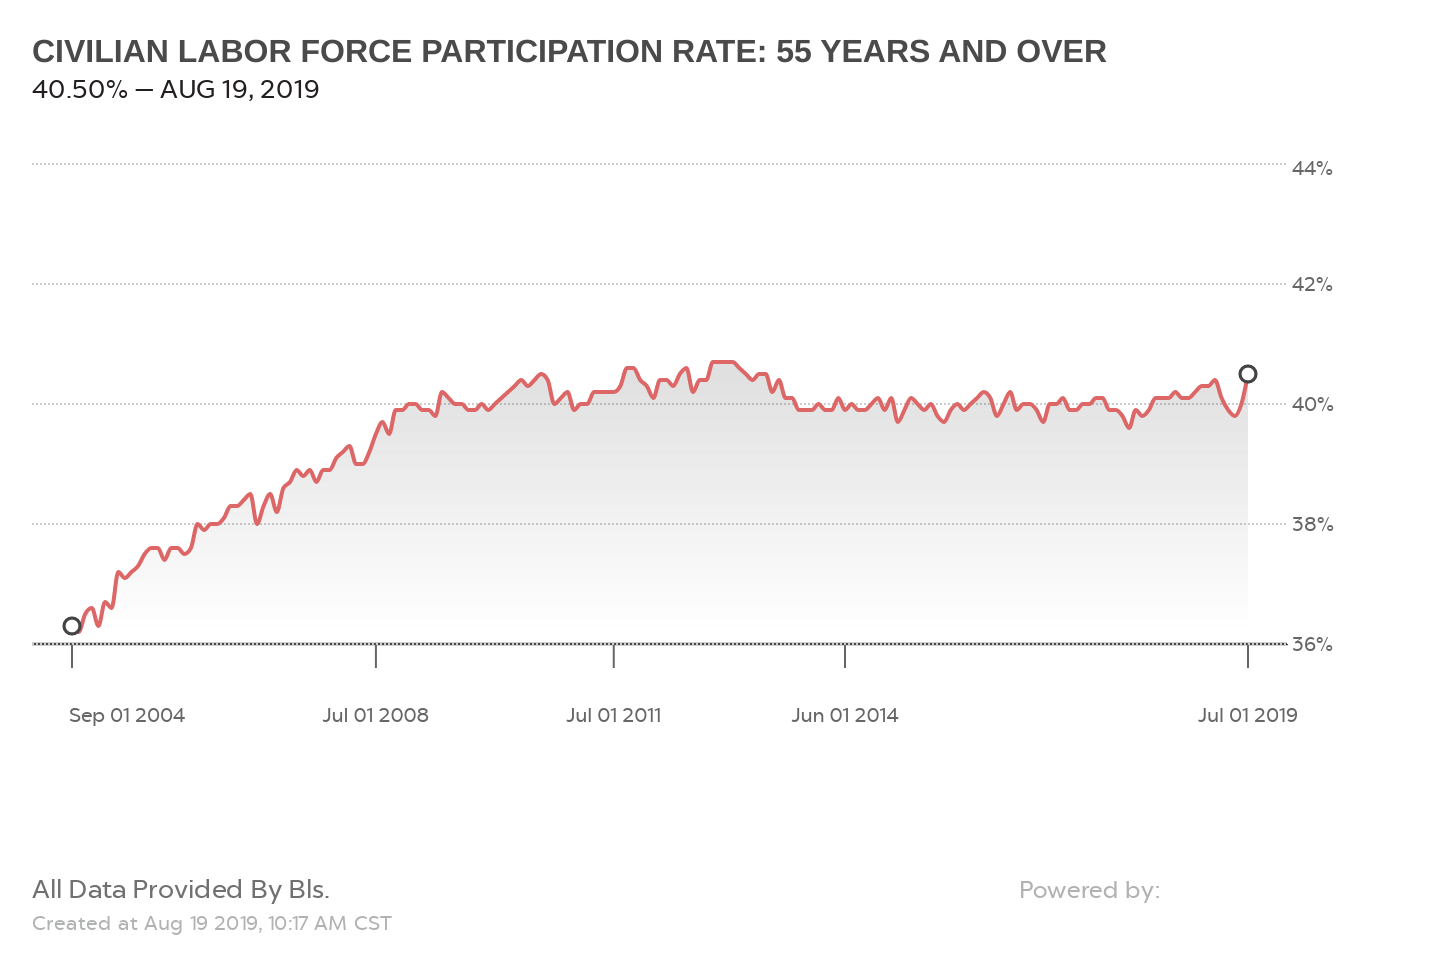 CIVILIAN LABOR FORCE PARTICIPATION RATE: 55 YEARS AND OVER